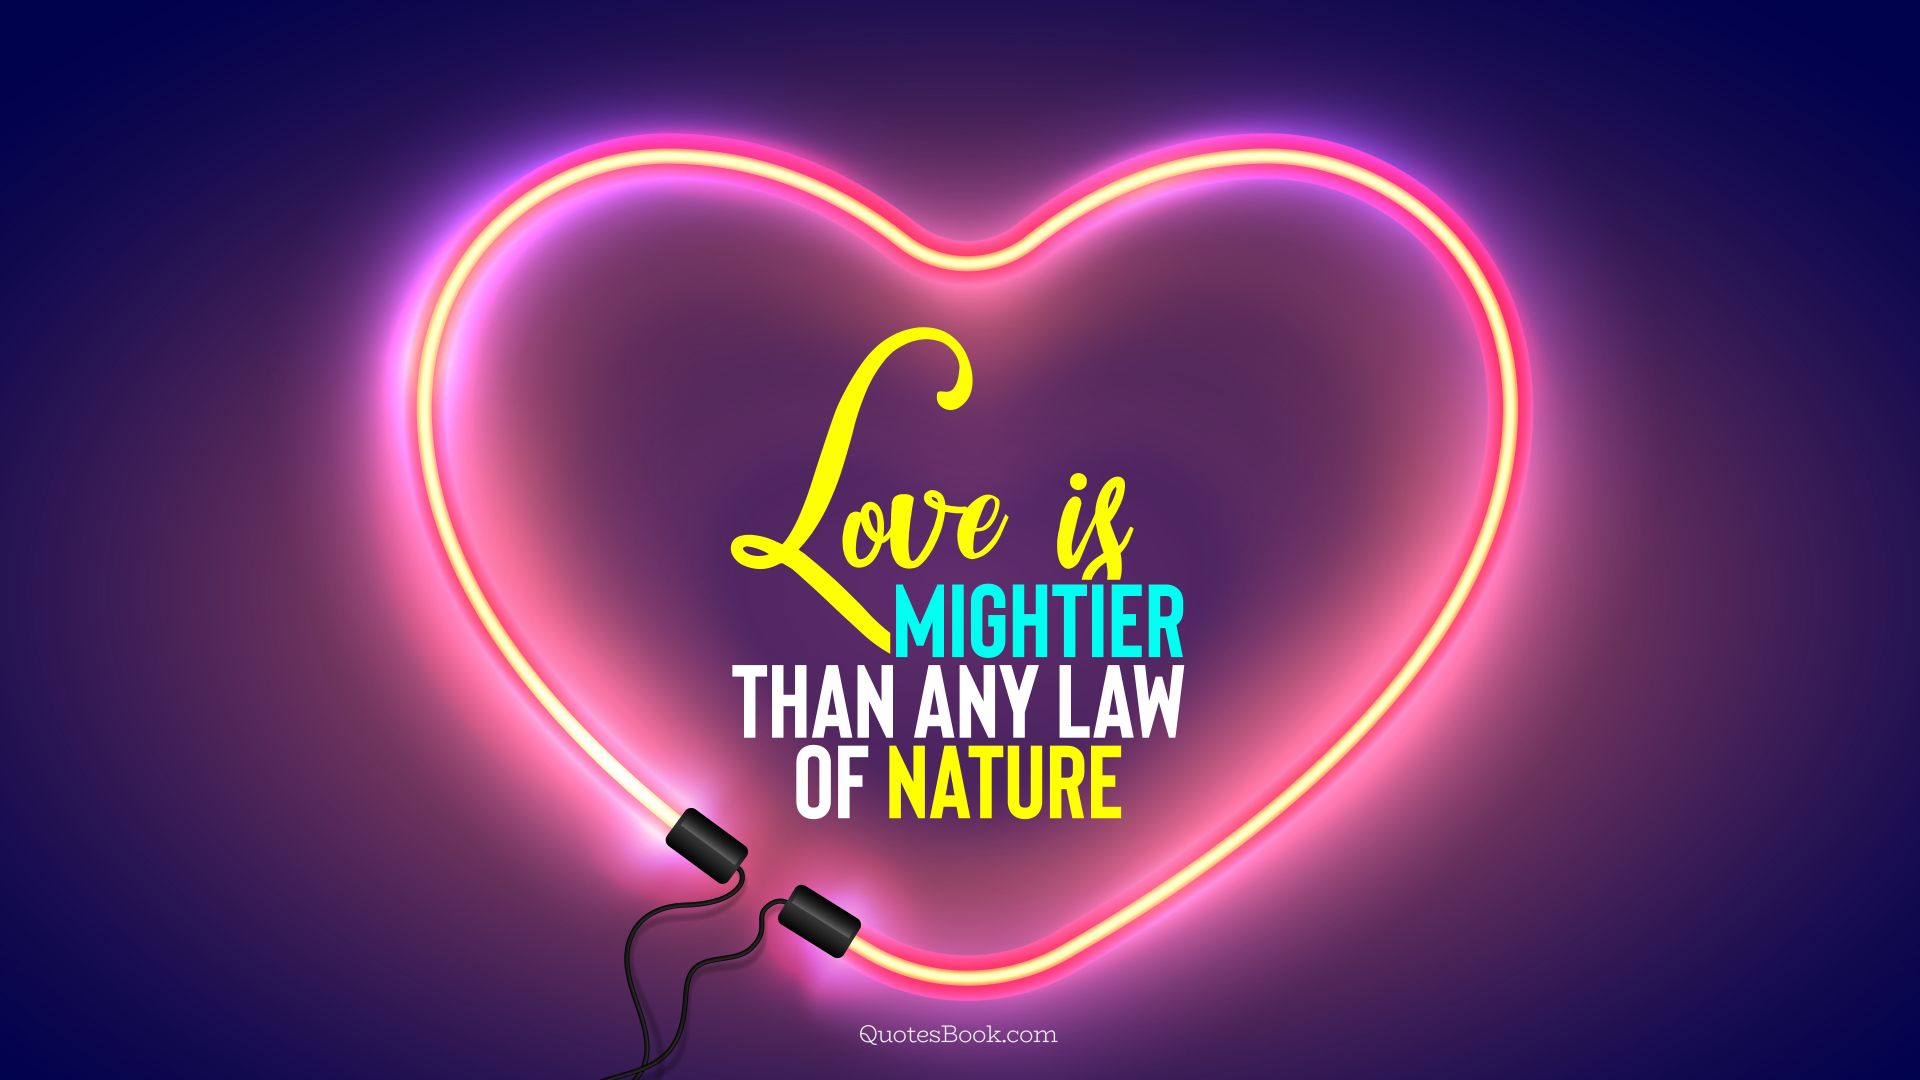 Love is mightier than any law of nature